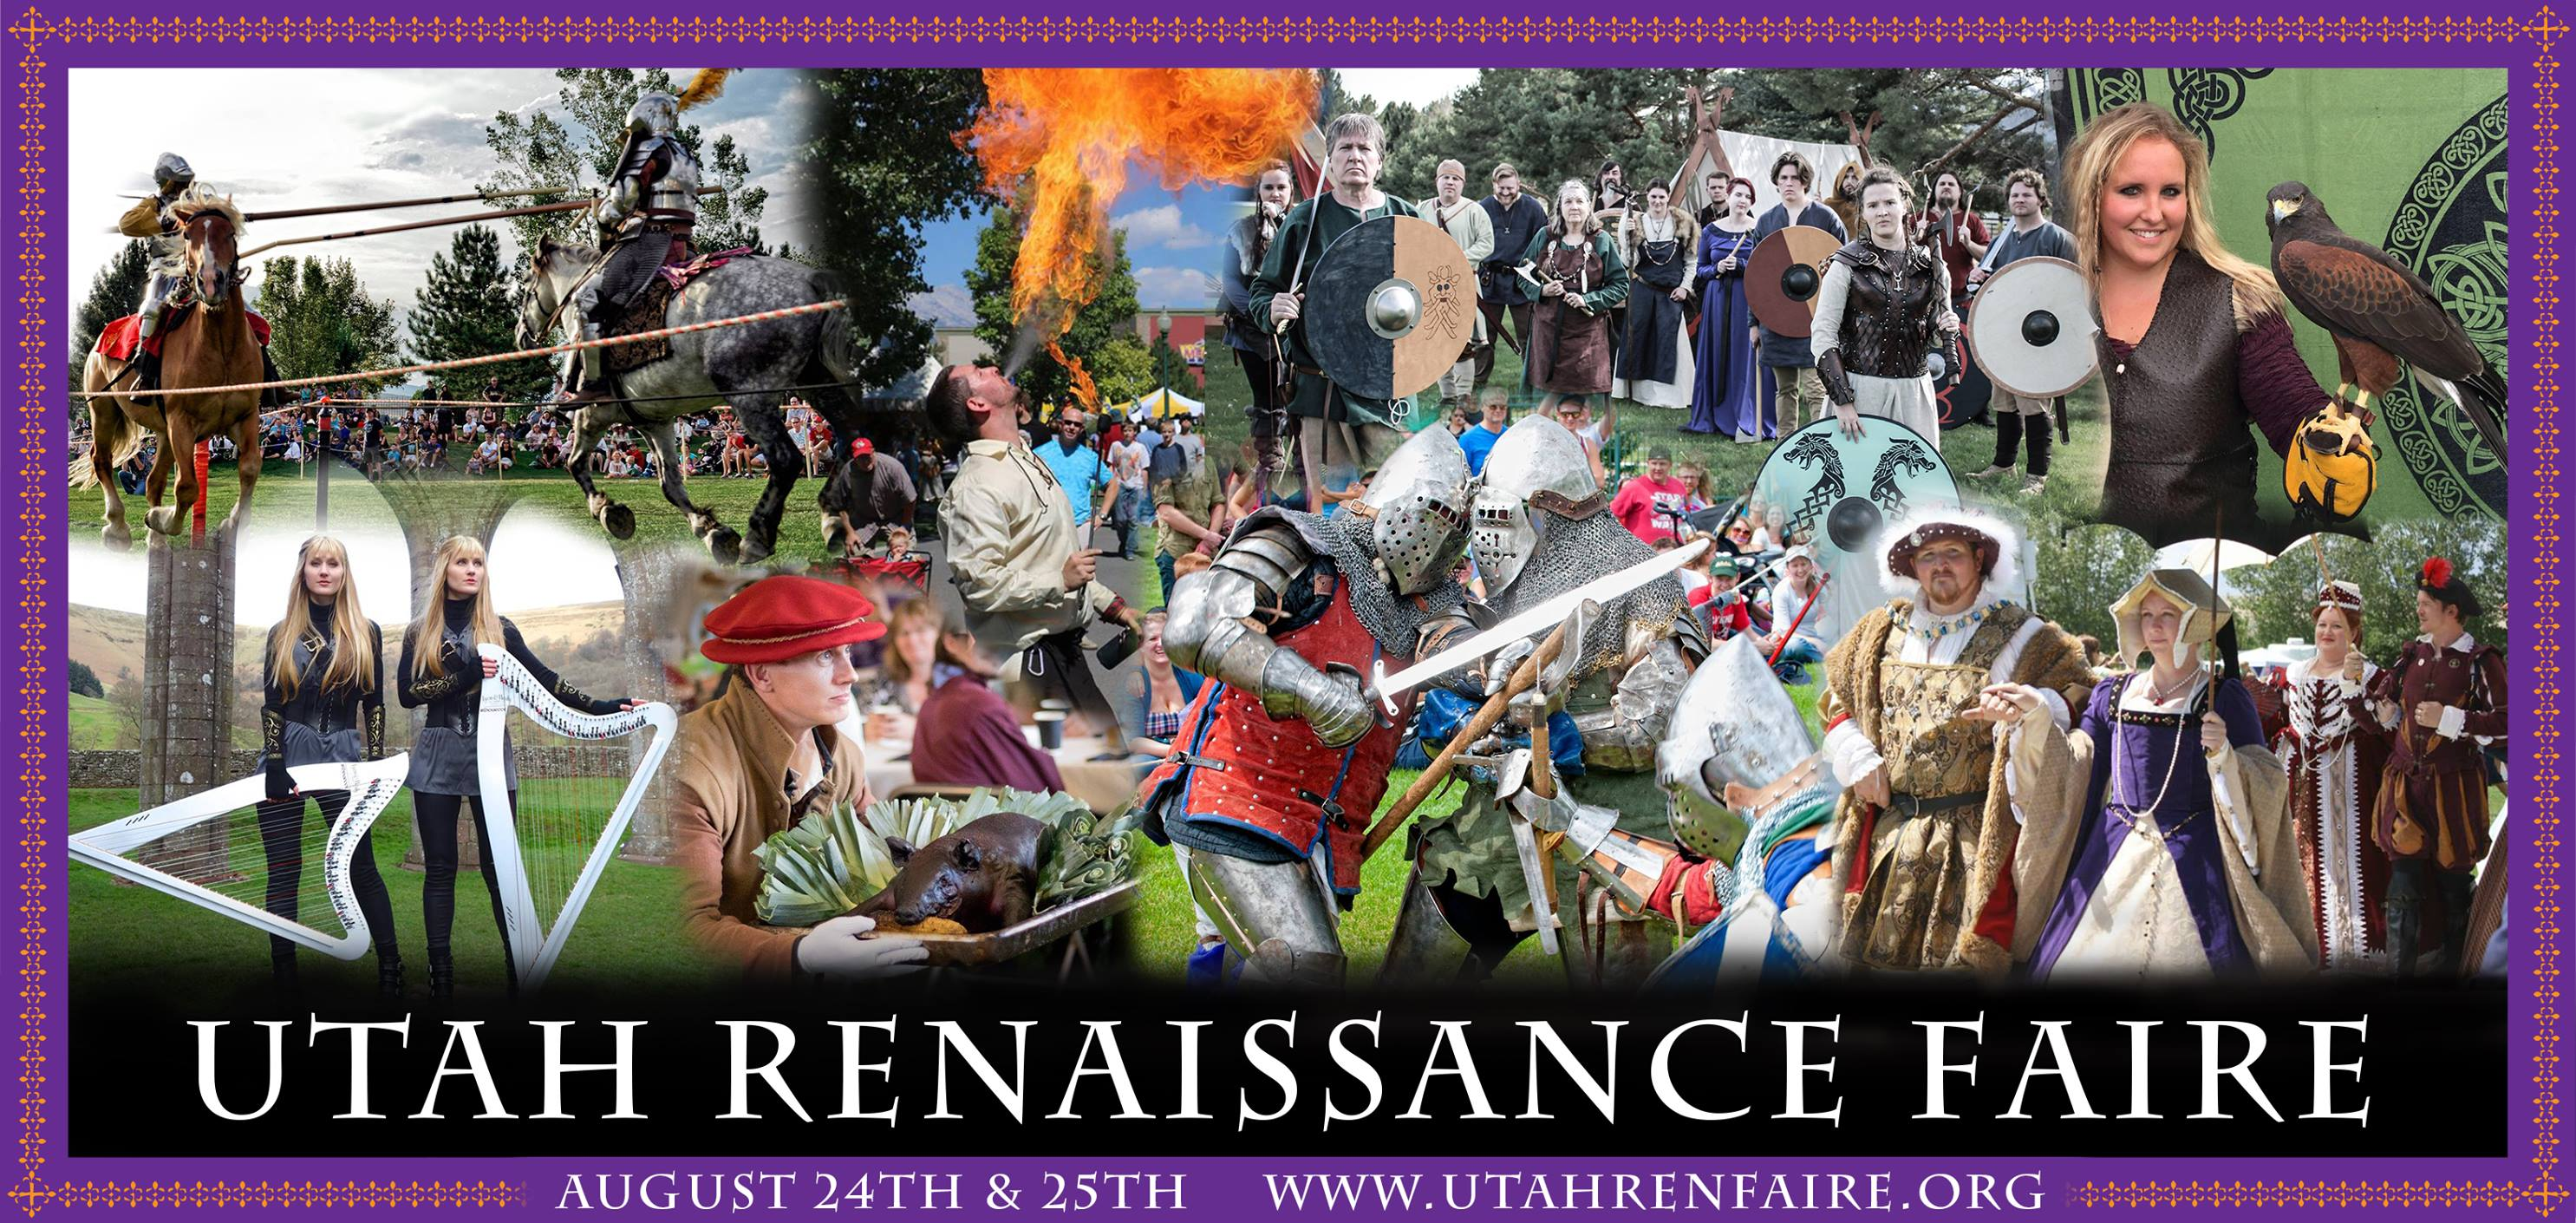 utah renaissance faire at thanksgiving point in lehi is jolly good